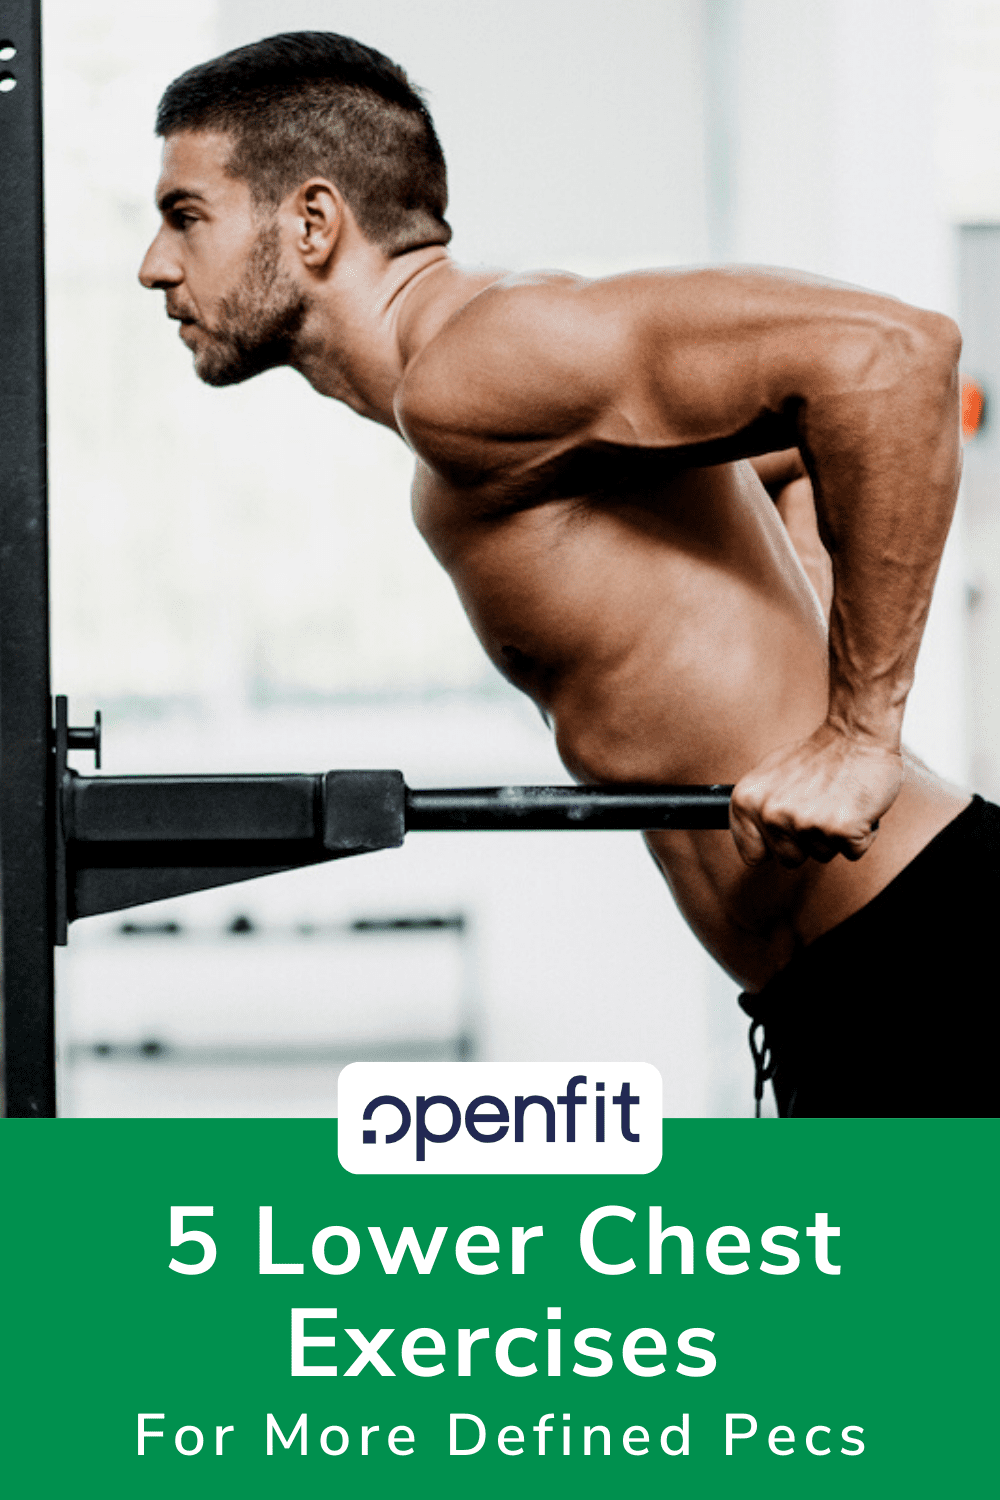 lower chest exercises pin image